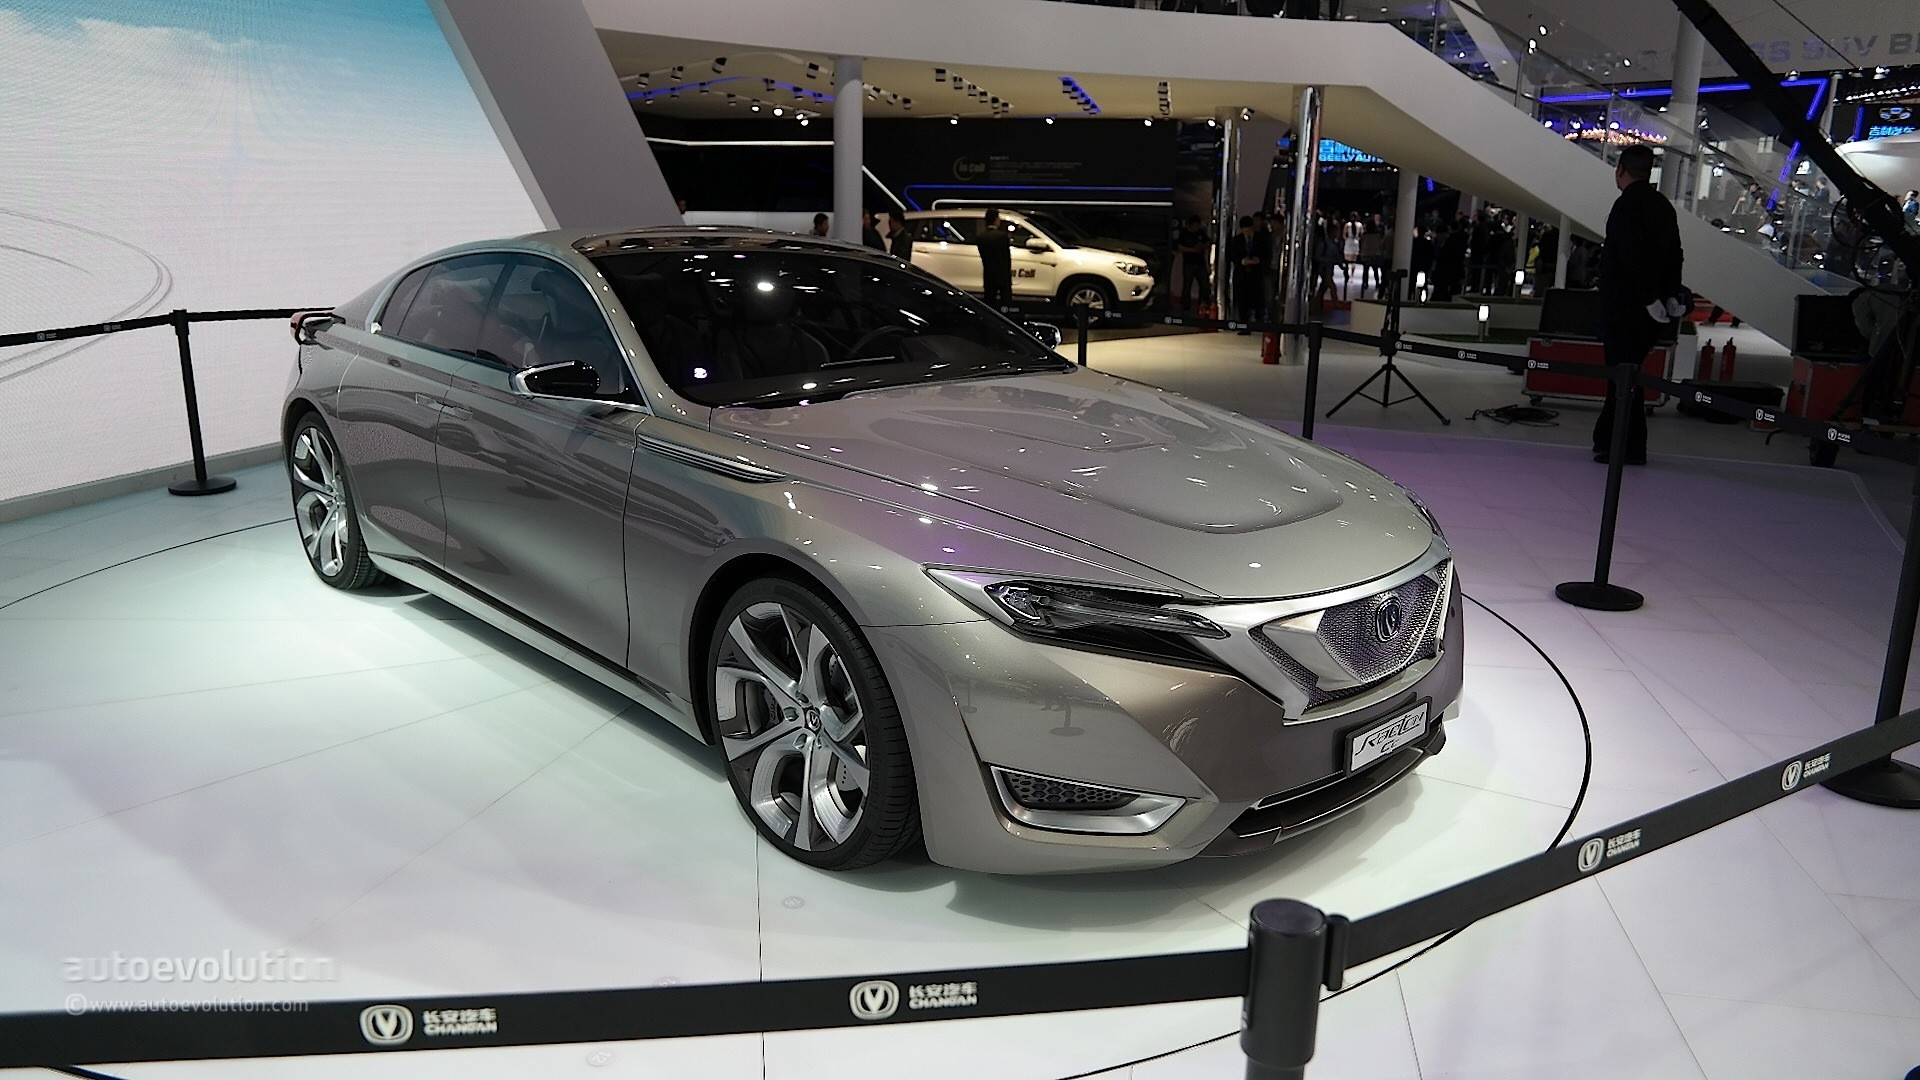 2015 - [Chine] Salon Auto de Shanghai - Page 2 Changan-raeton-cc-concept-is-an-underpowered-tesla-model-s-rival-in-shanghai-live-photos_8